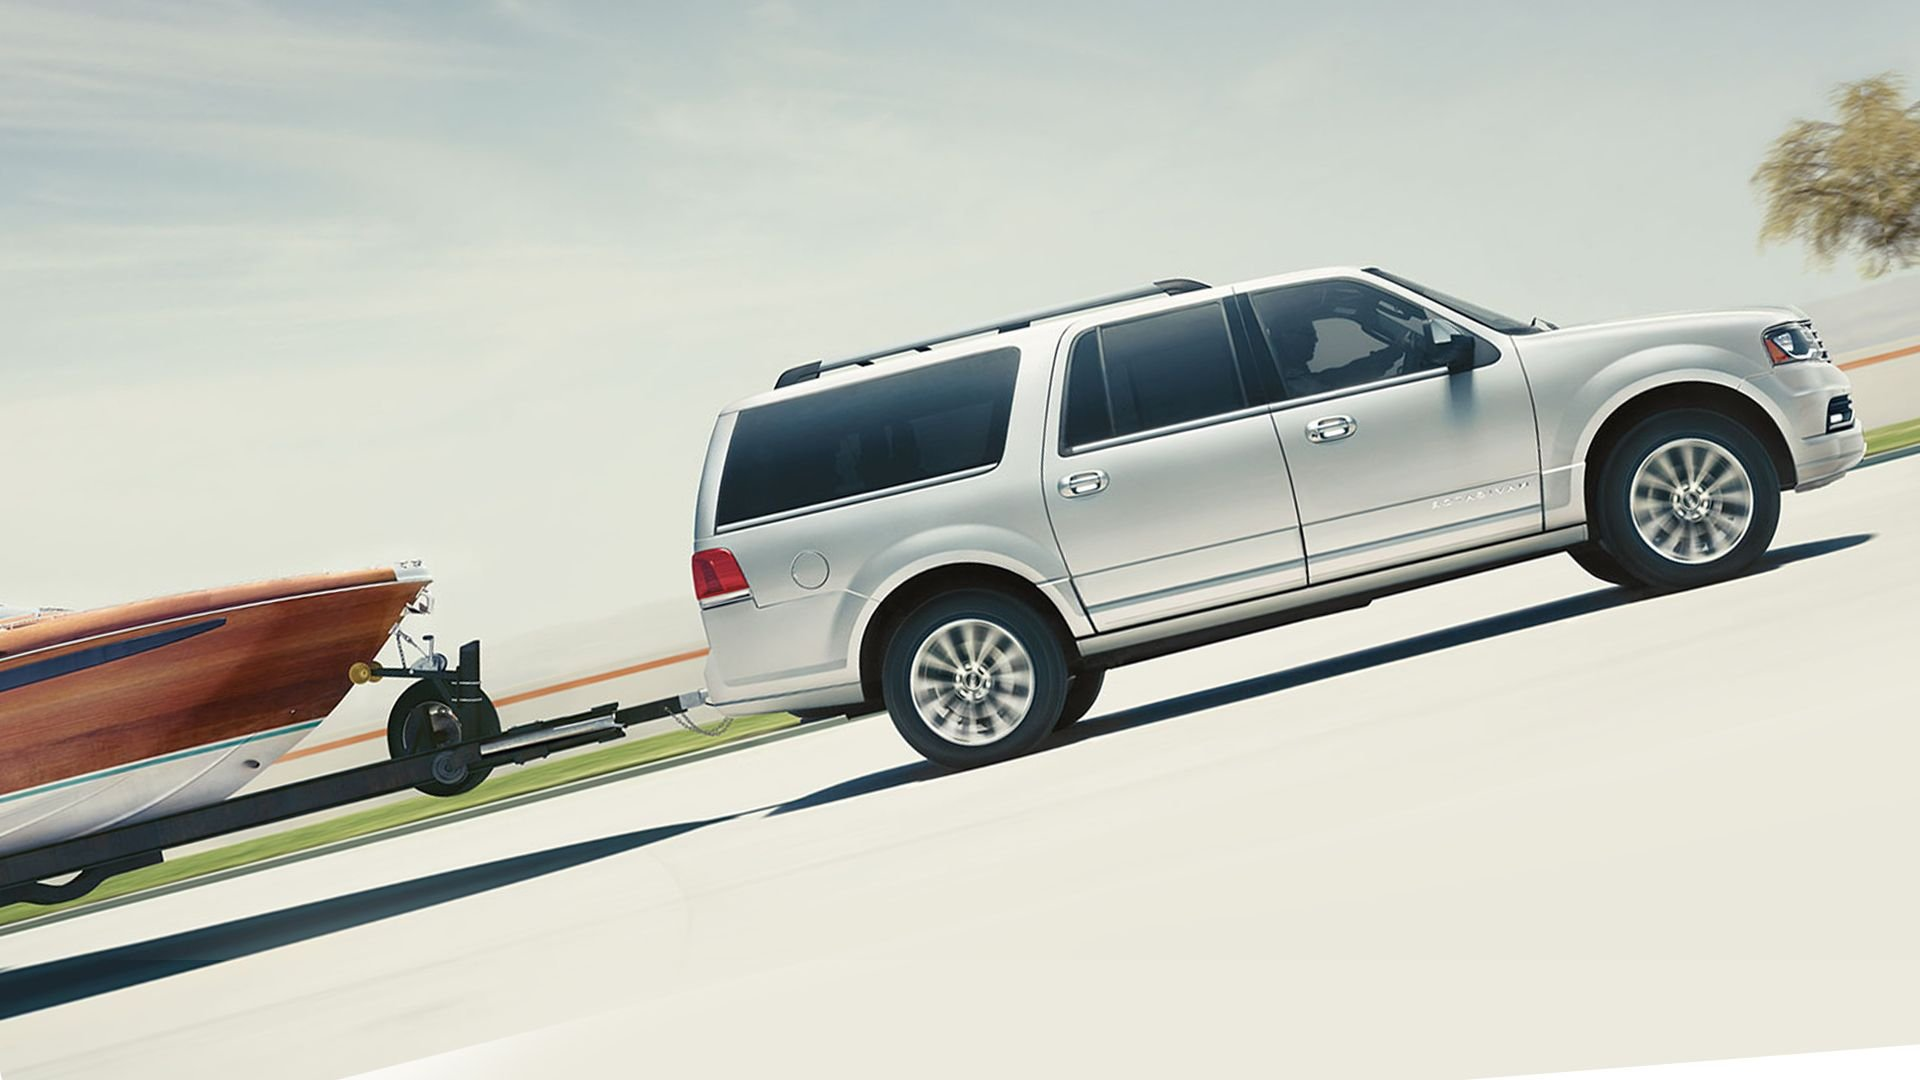 New 2018 Lincoln Navigator Exterior Redesign